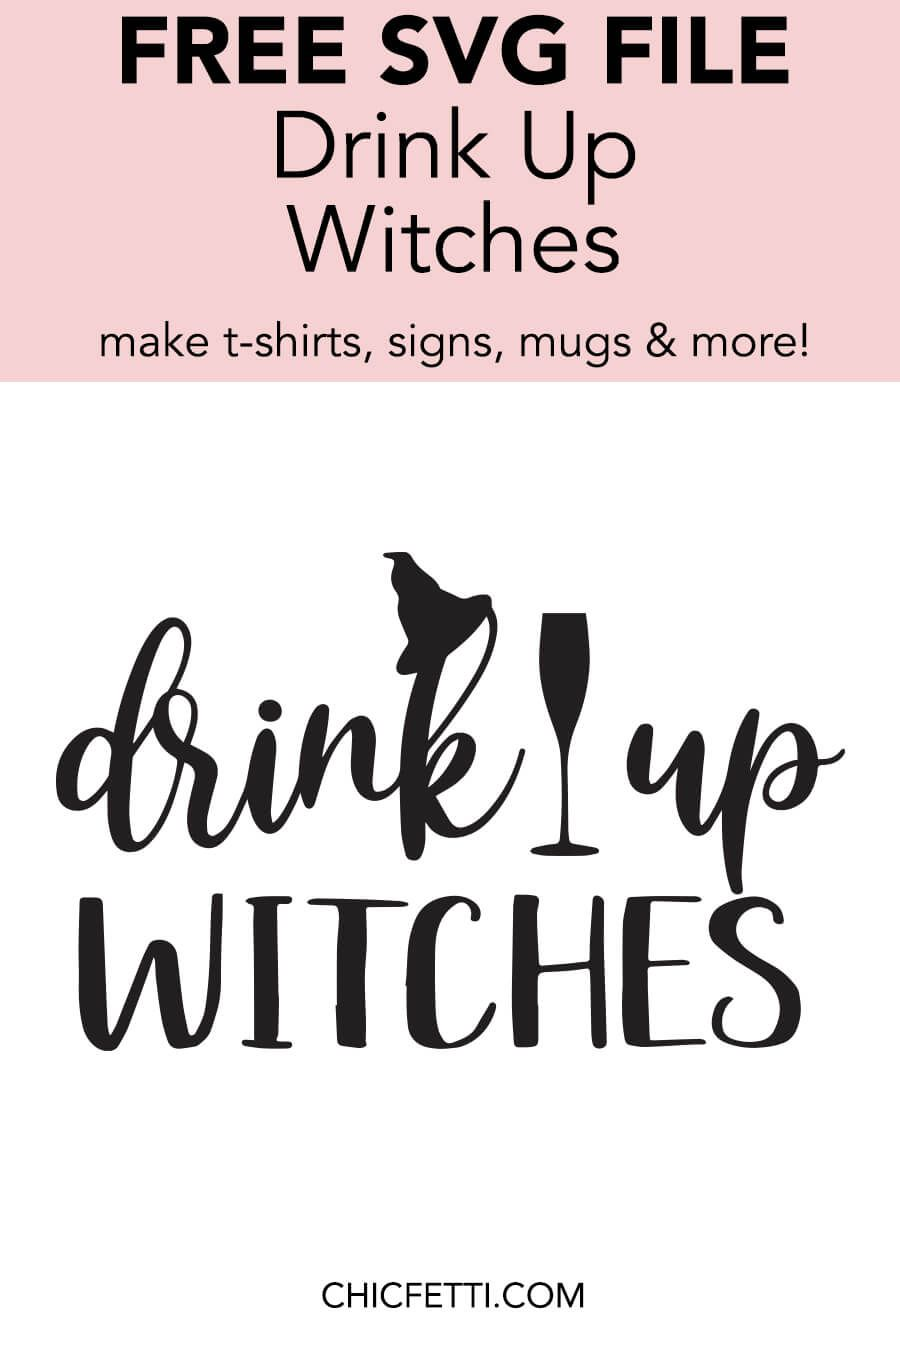 Drink Up Witches Svg File Svg Svg Free Files Halloween Koozie